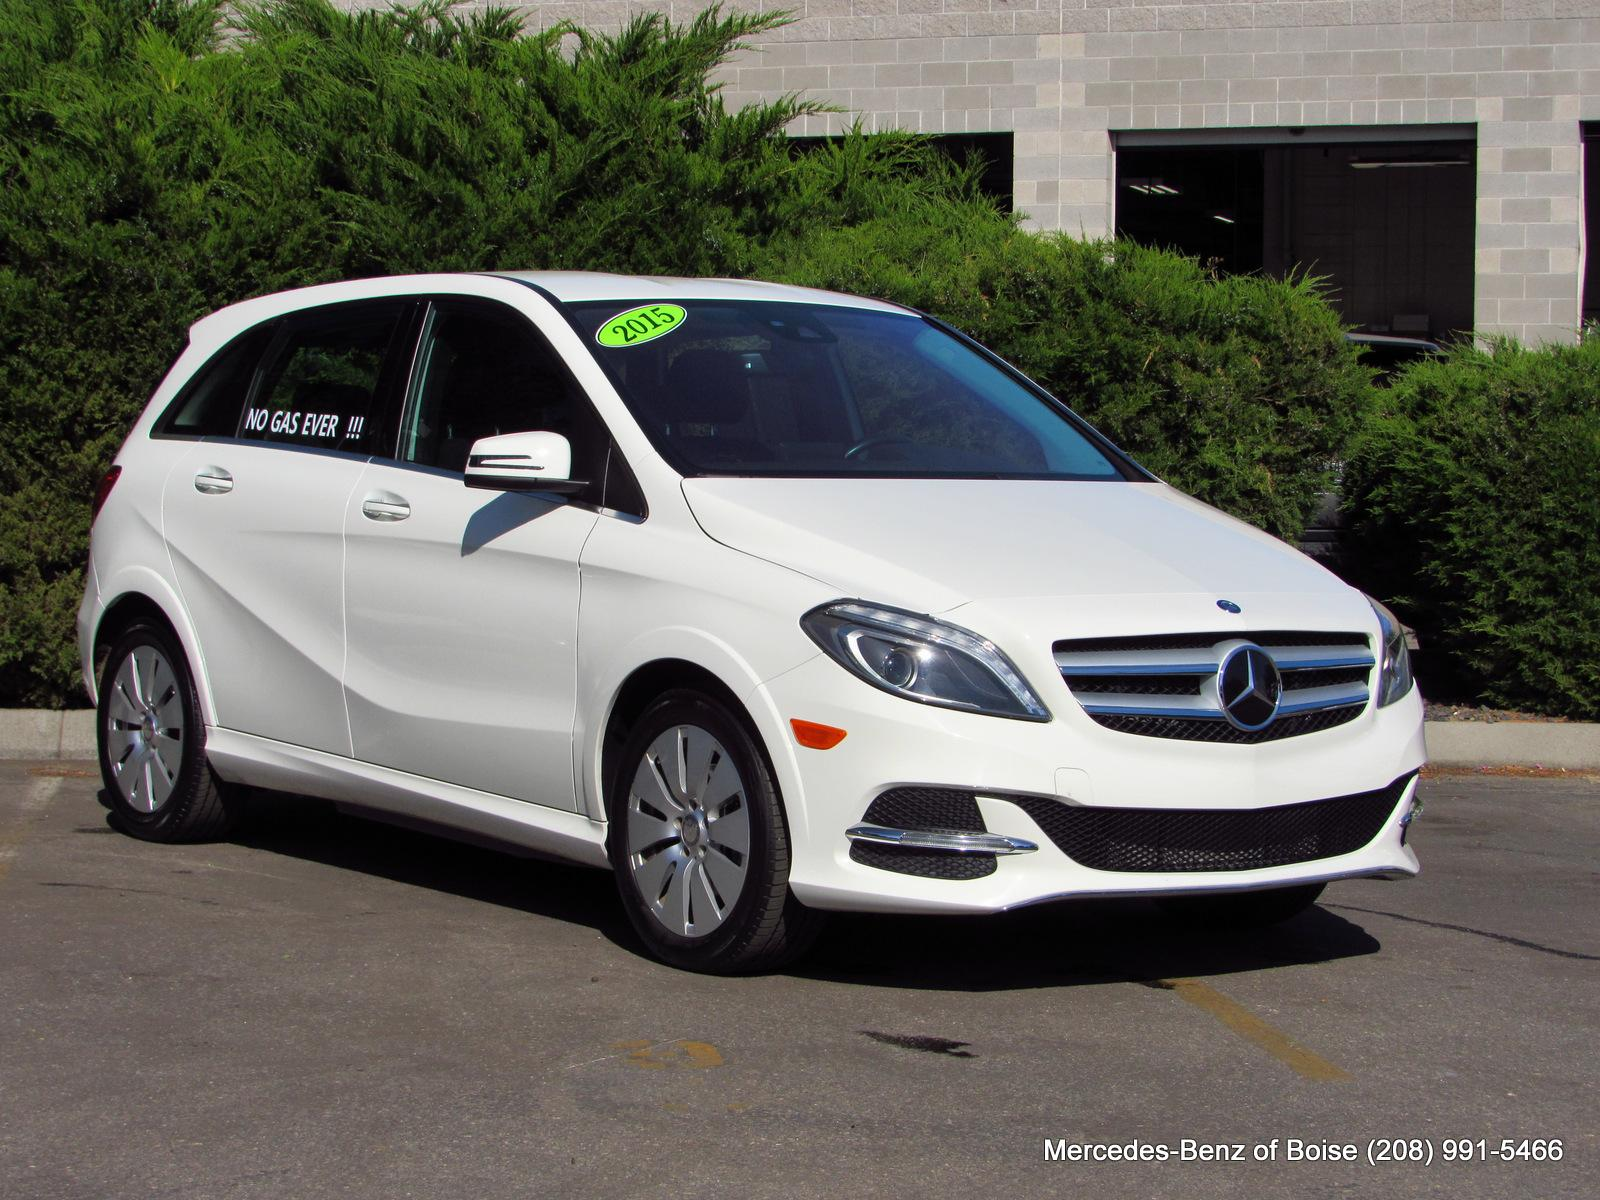 Pre-Owned 2015 Mercedes-Benz B-Class 4dr HB Electric Drive